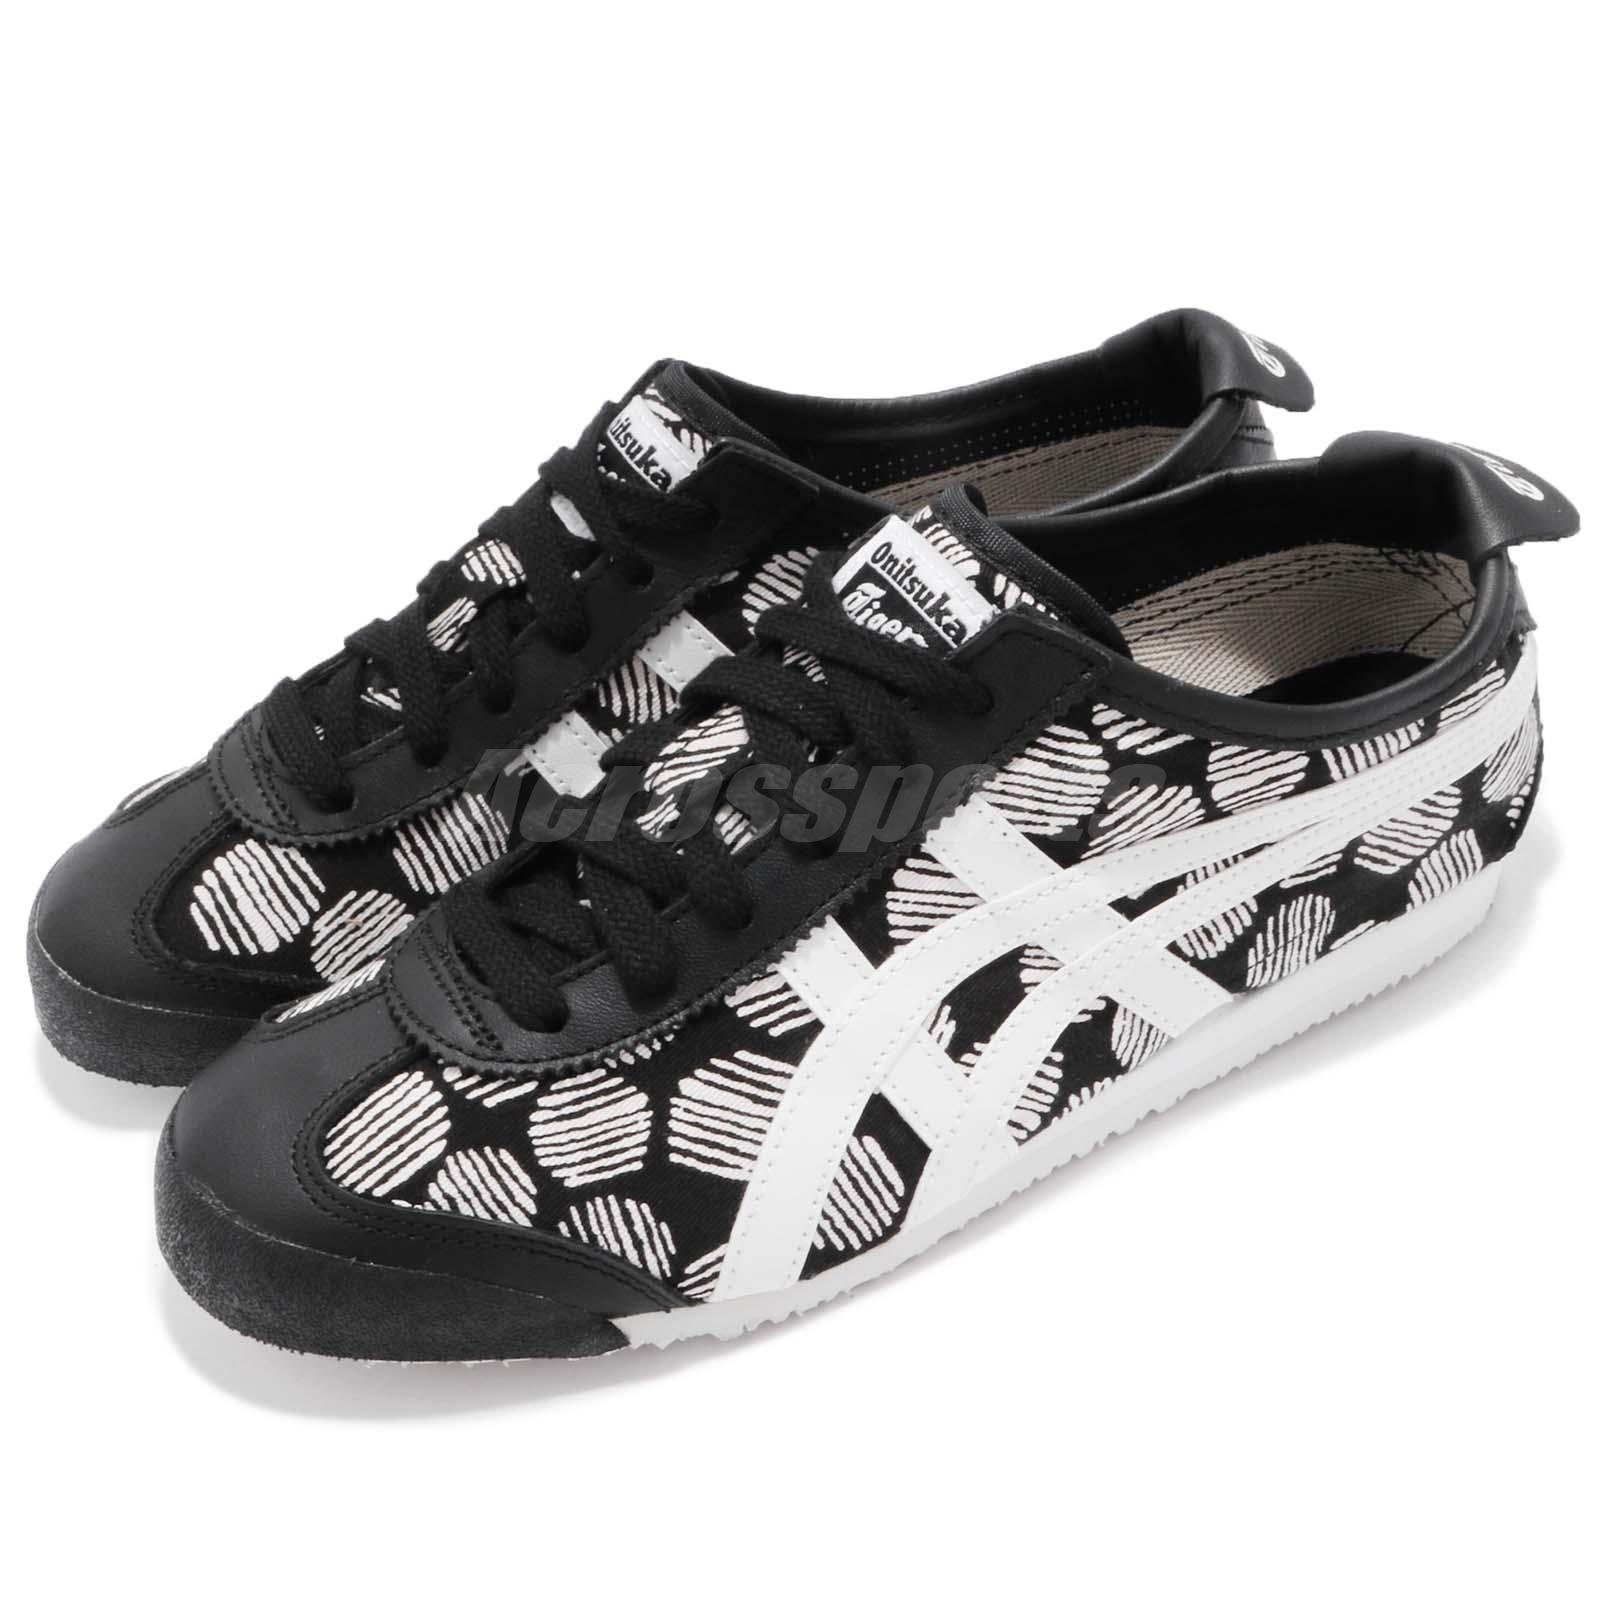 buy popular a041a 908a2 Details about Asics Onitsuka Tiger Mexico 66 Black White Round Men Running  Shoes D620N-9001